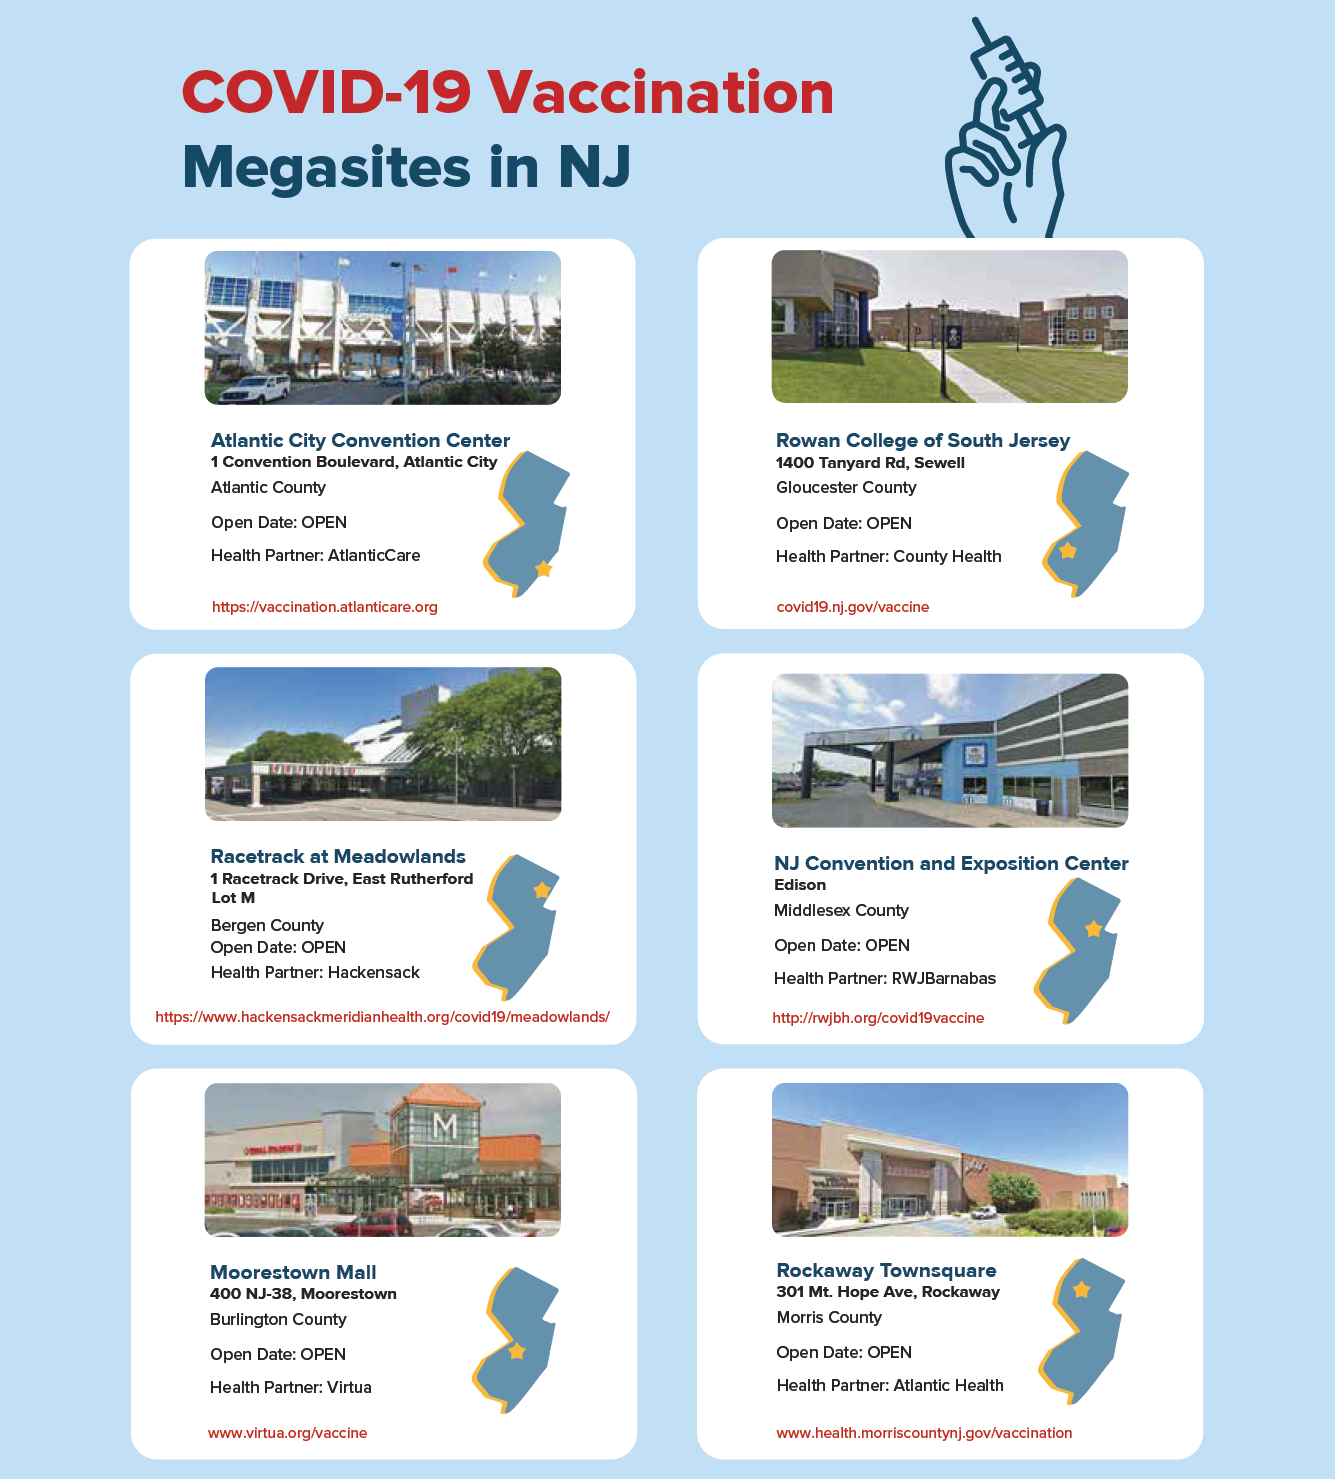 COVID-19 Vaccination Megasites